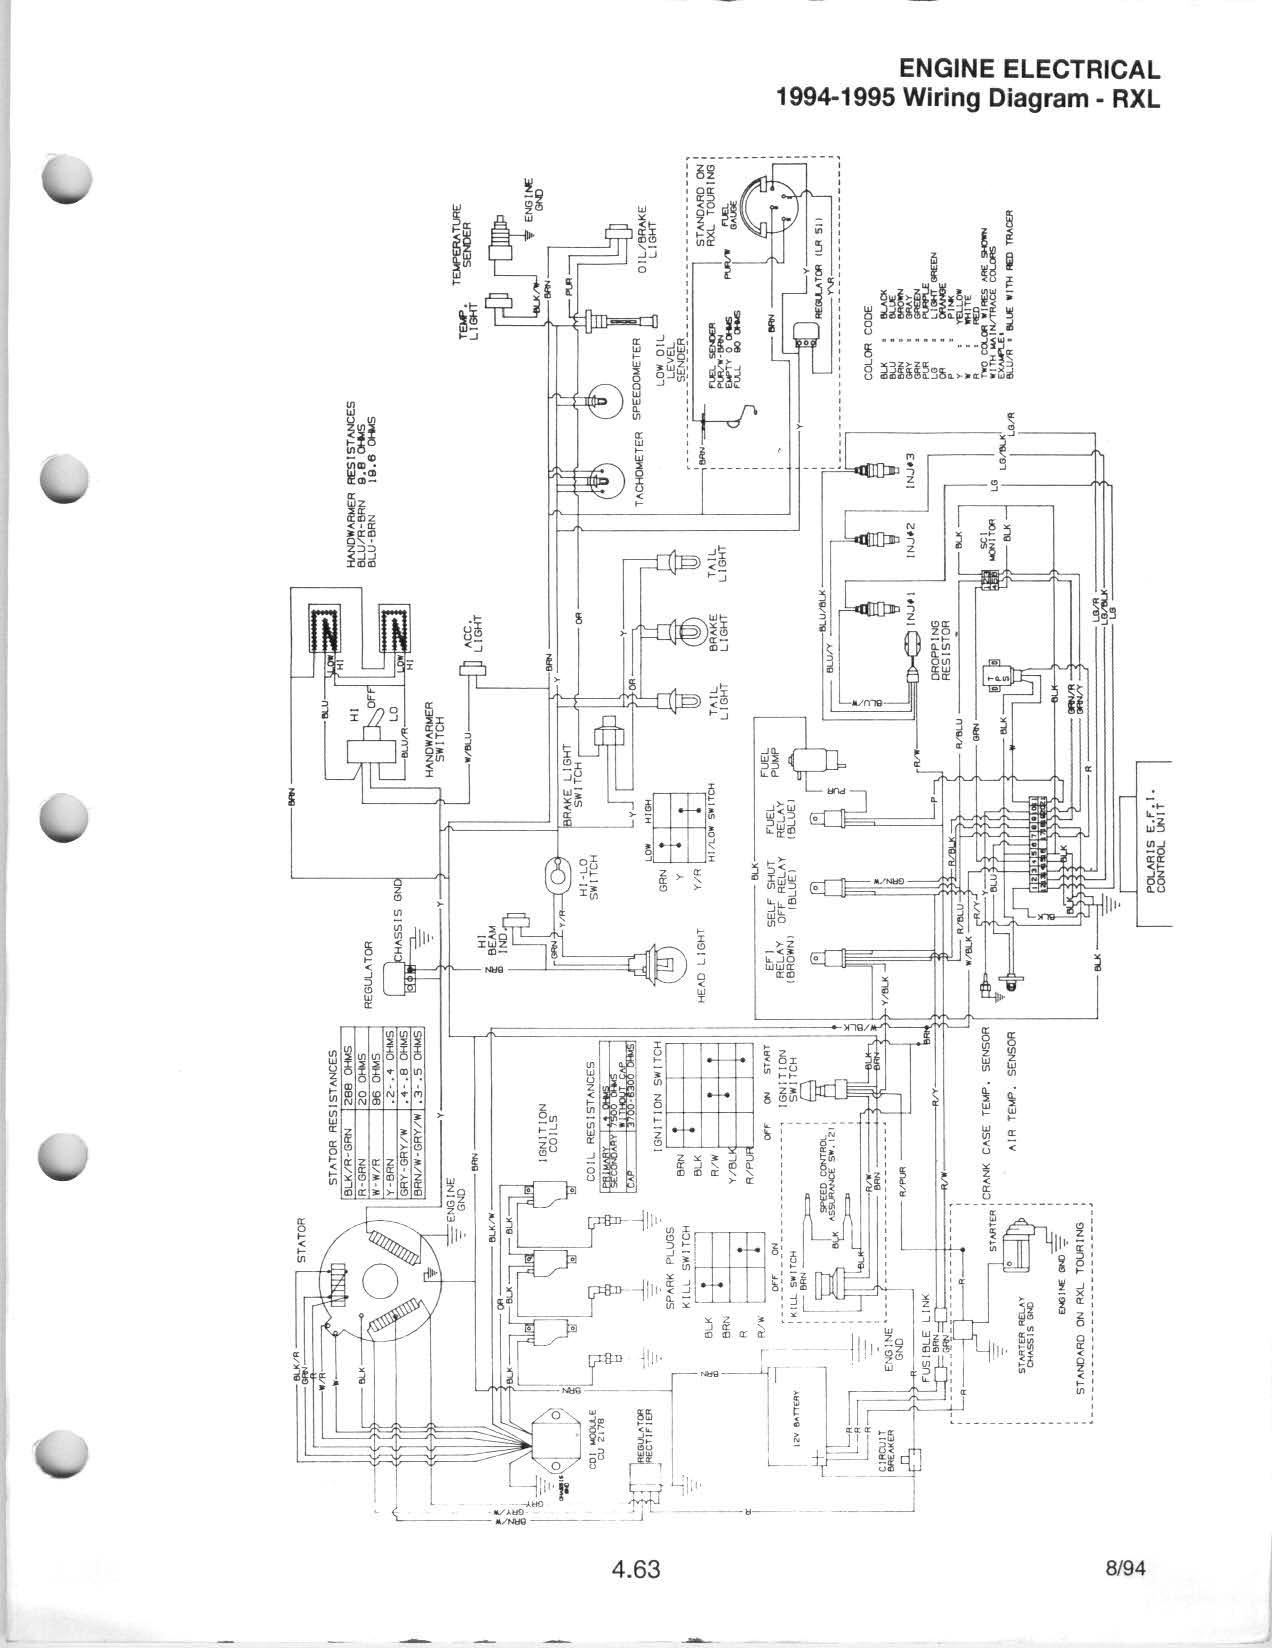 fiat fuel pump diagram polaris ranger fuel pump wiring diagram collection polaris fuel pump diagram